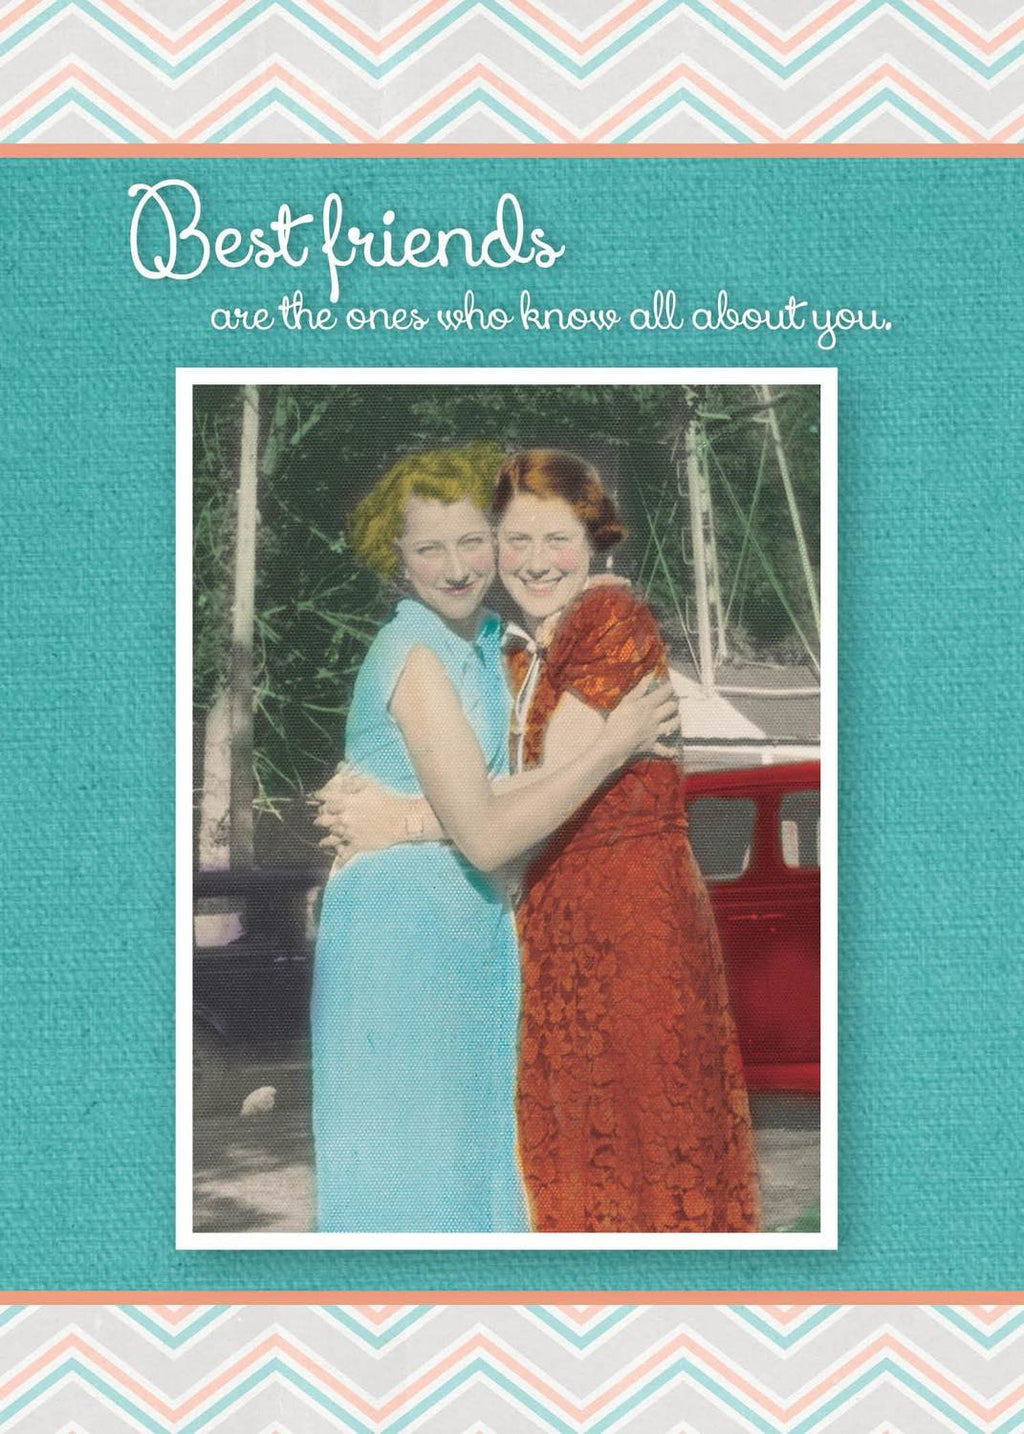 Bestfriends Know All About You - Birthday Card